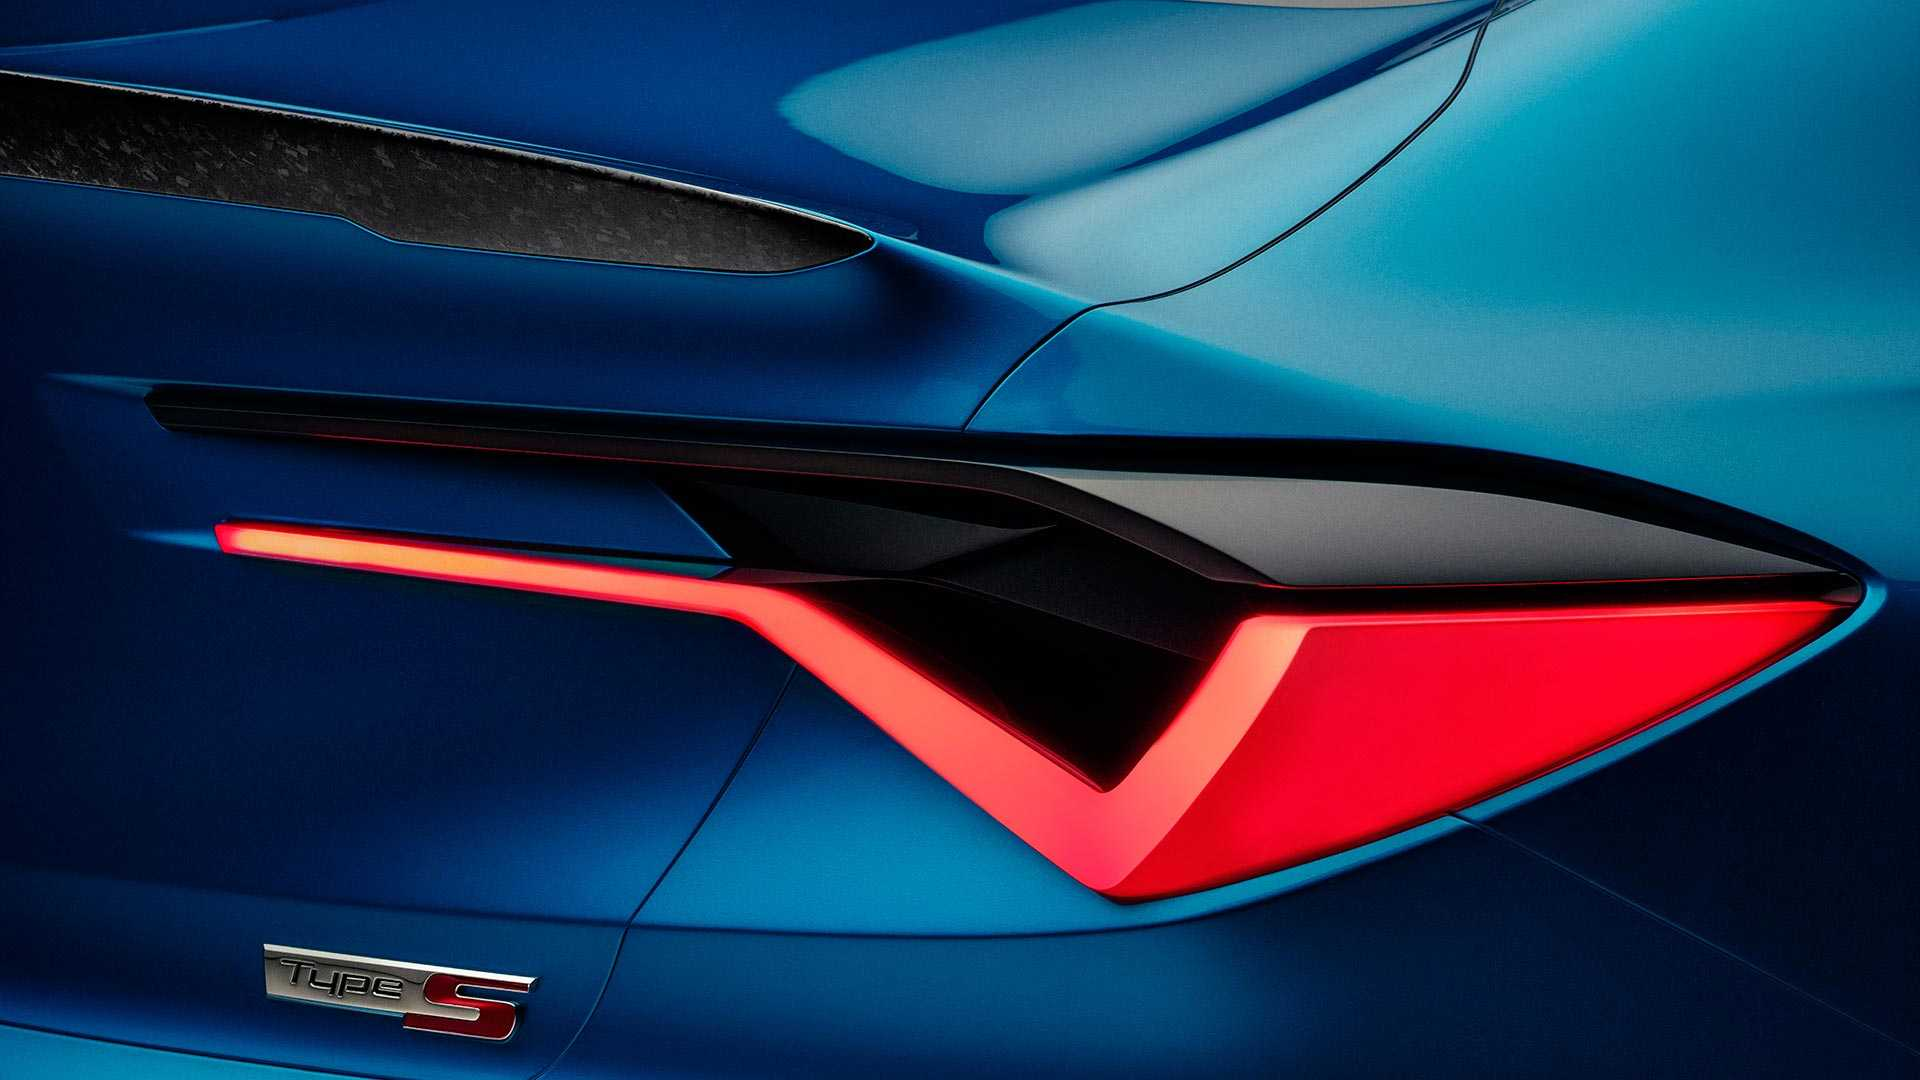 2019 Acura Type S Concept Tail Light Wallpapers (13)